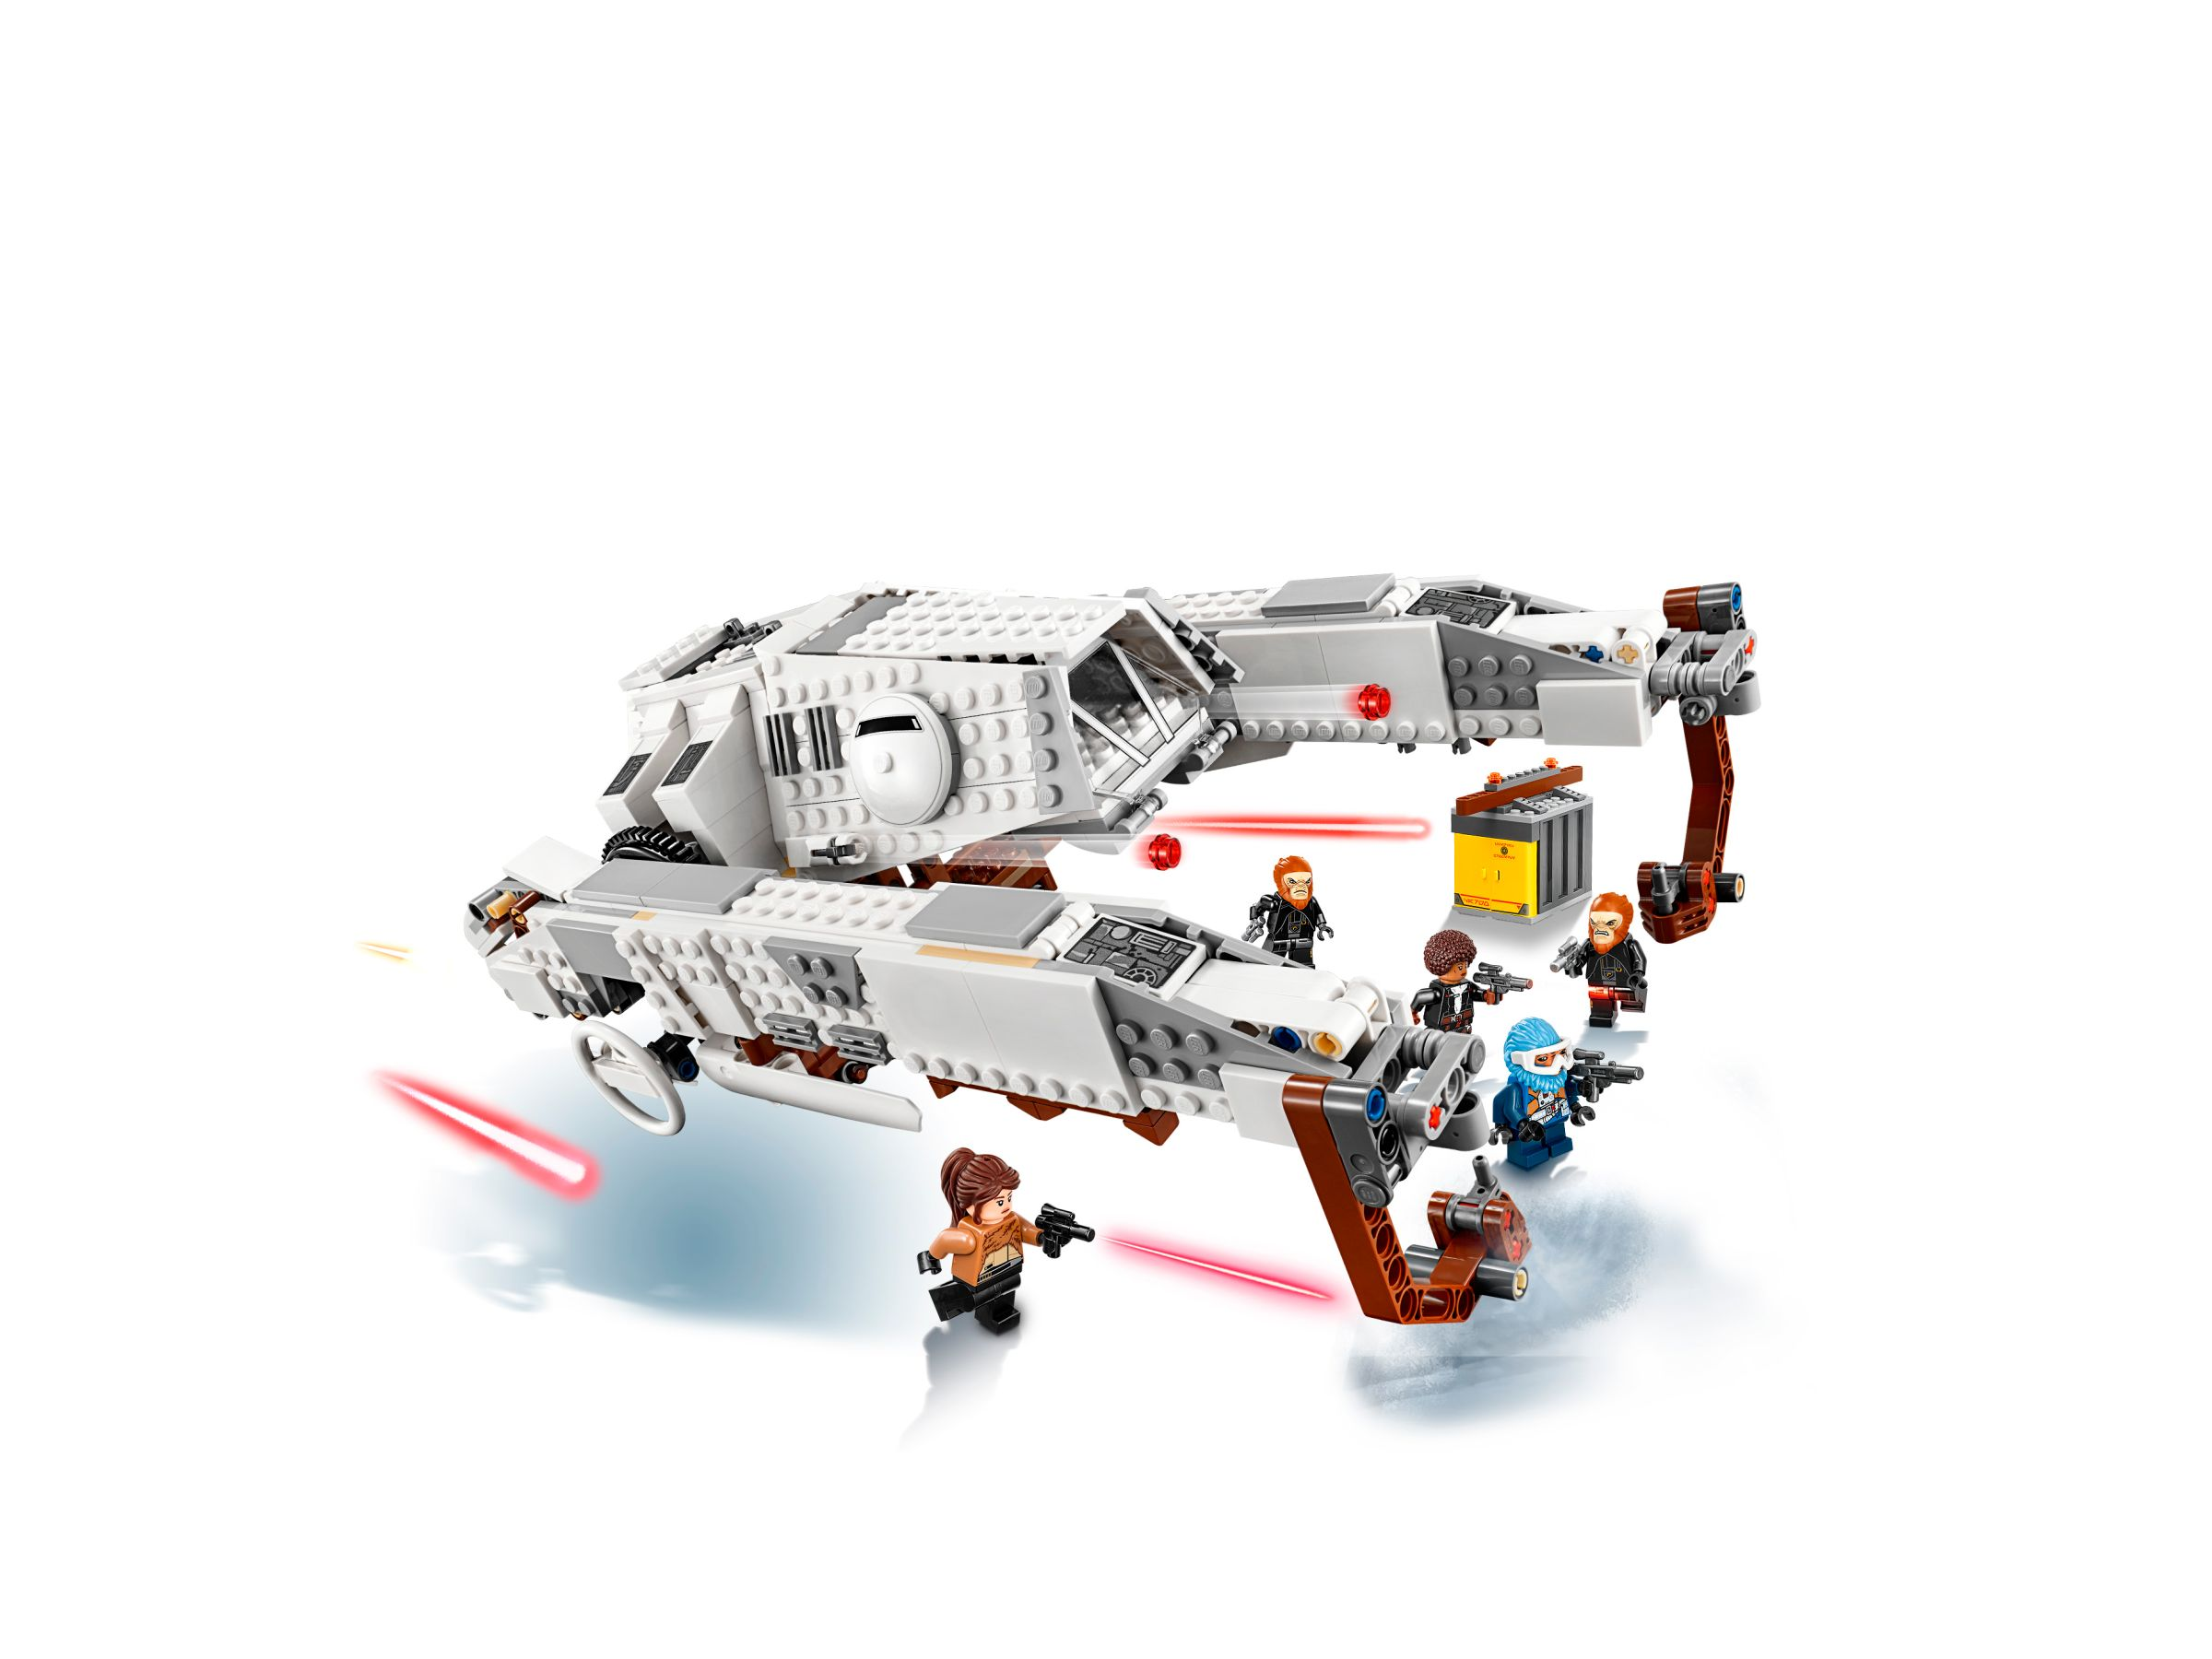 LEGO Star Wars 75219 Imperial AT-Hauler™ LEGO_75219_alt2.jpg